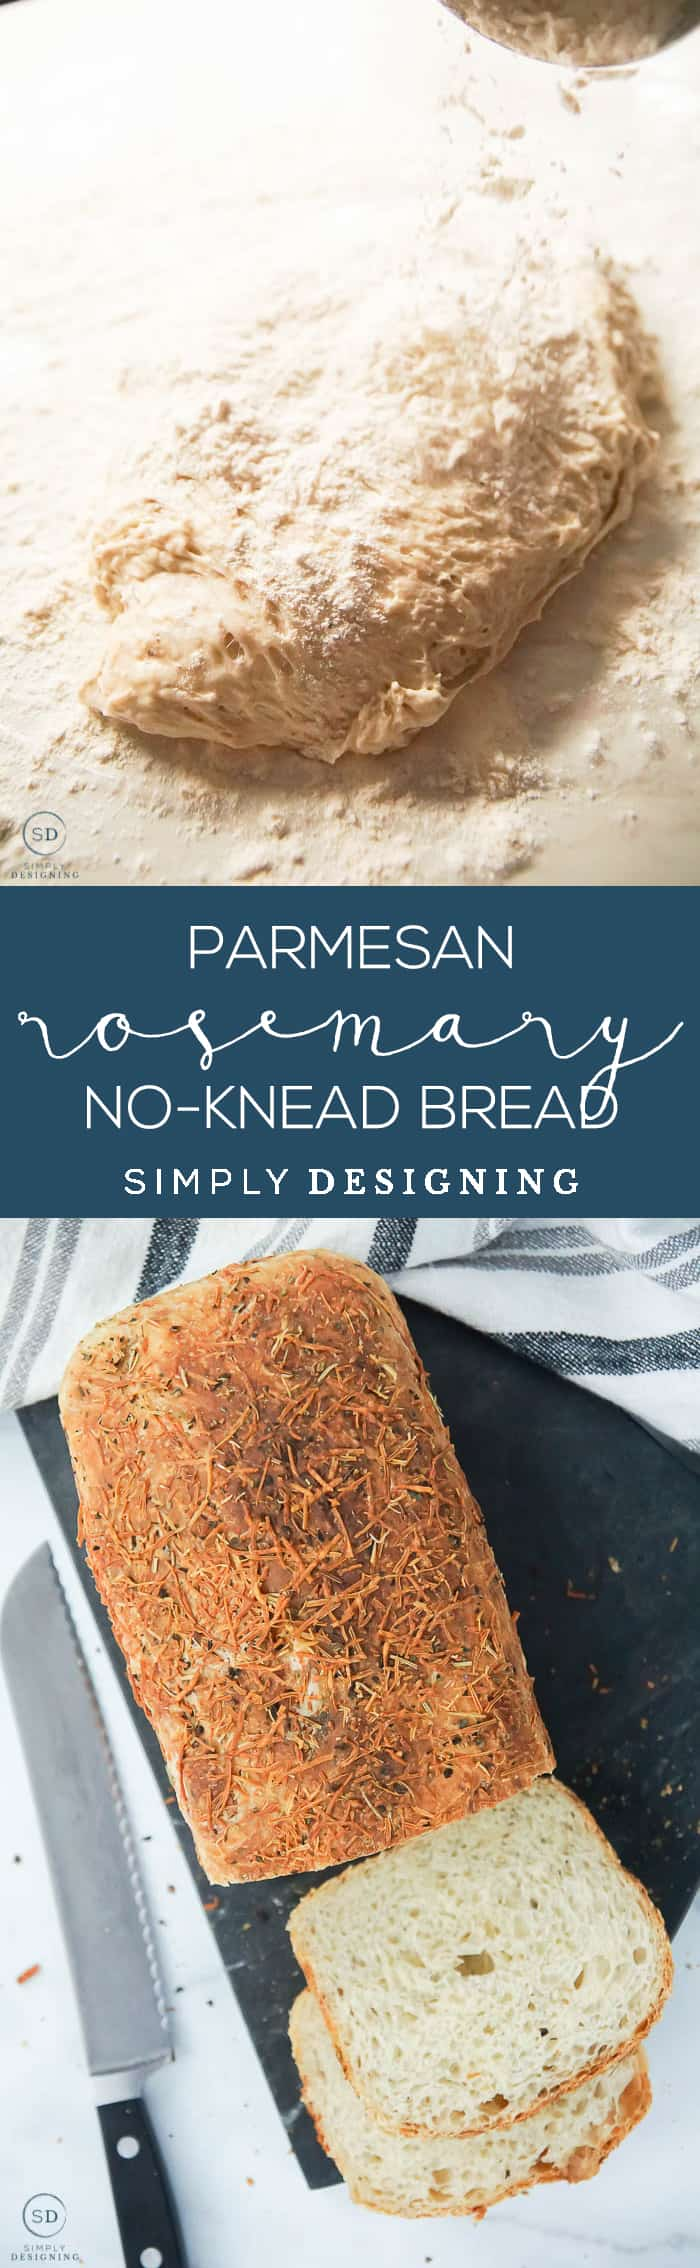 This no-knead Parmesan Rosemary Bread is simply delicious - It only takes about 5 minutes of hands-on time to make and is such a fluffy artisan bread